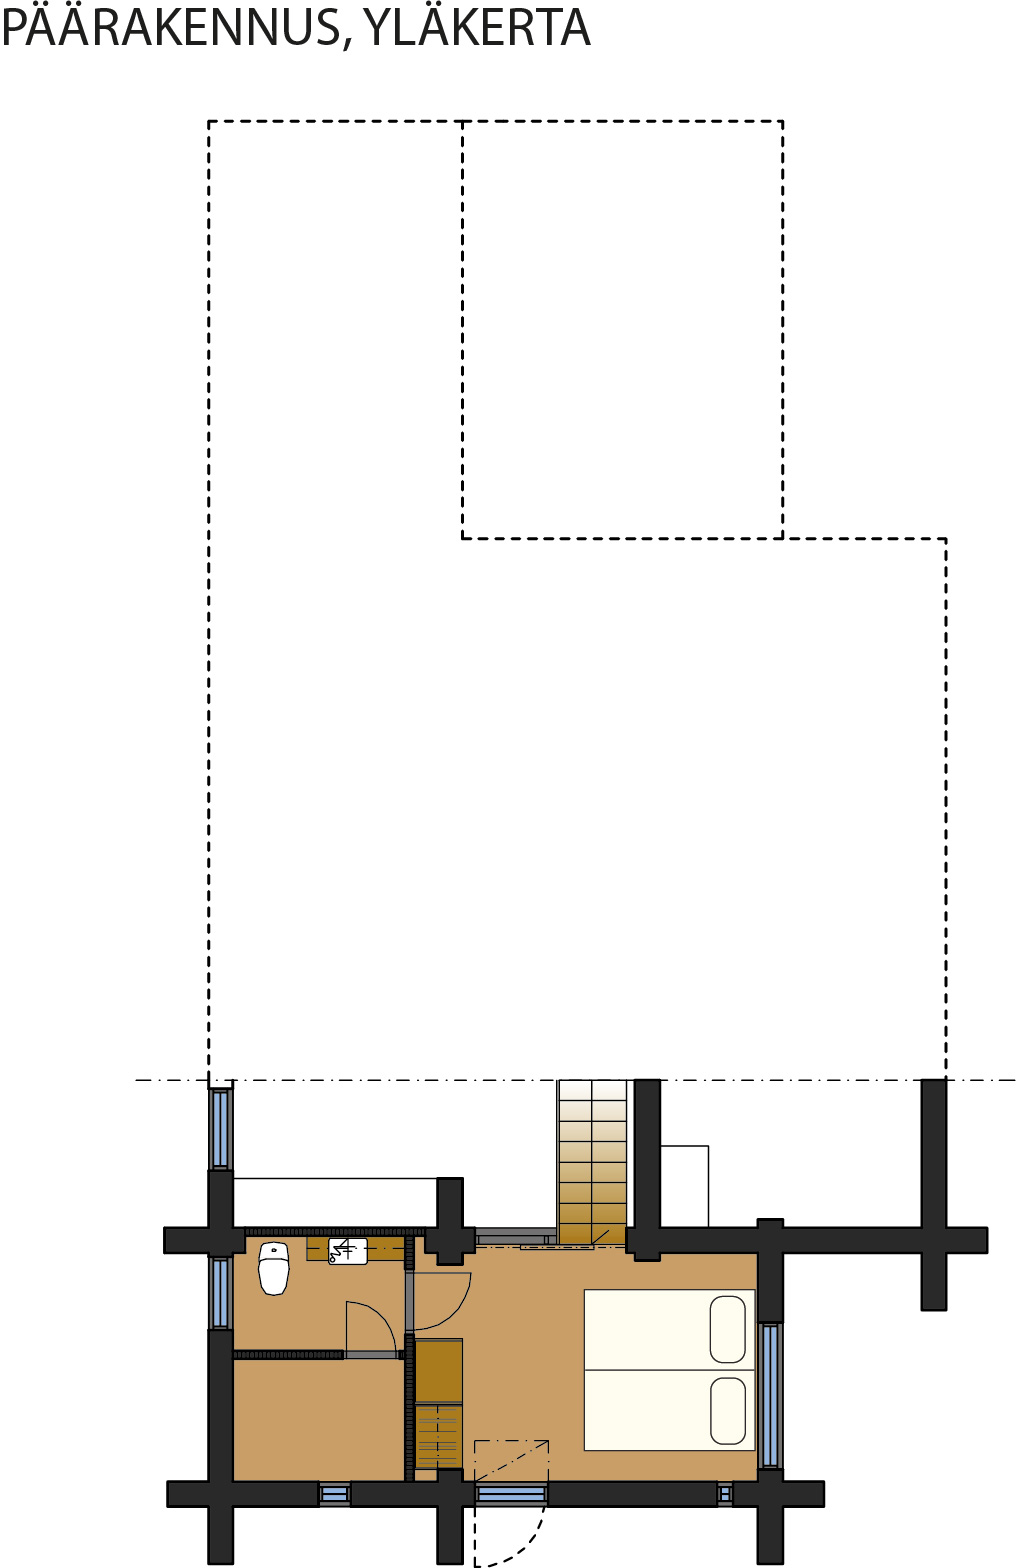 Main building Layout of 2nd floor